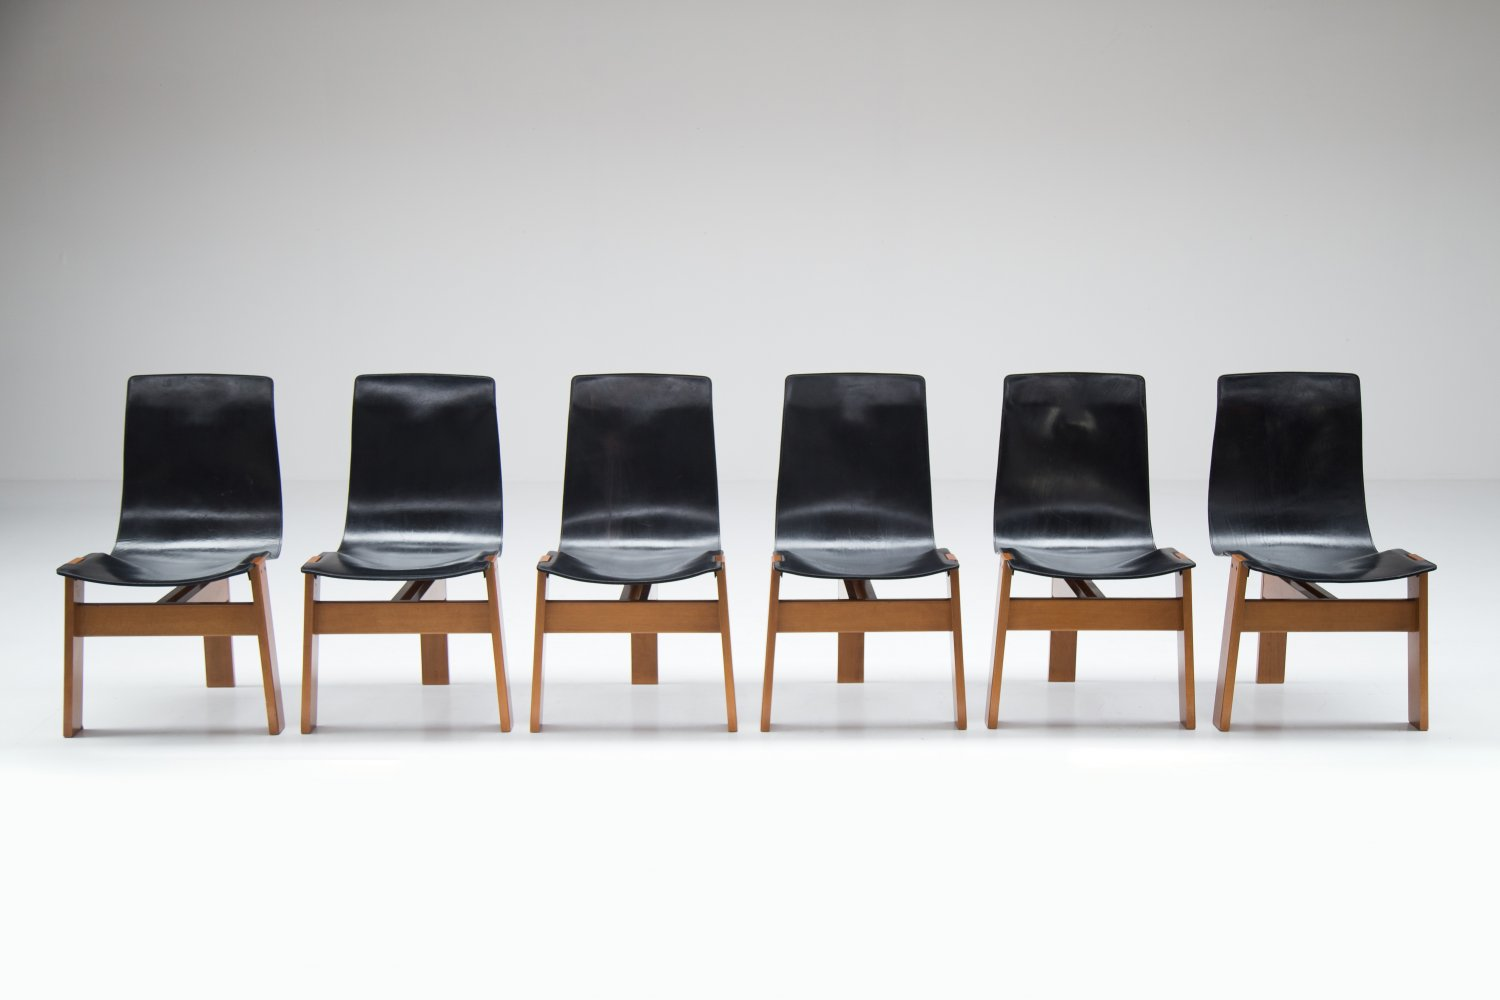 Set of 6 chairs by Angelo Mangiarotti for Skipper.